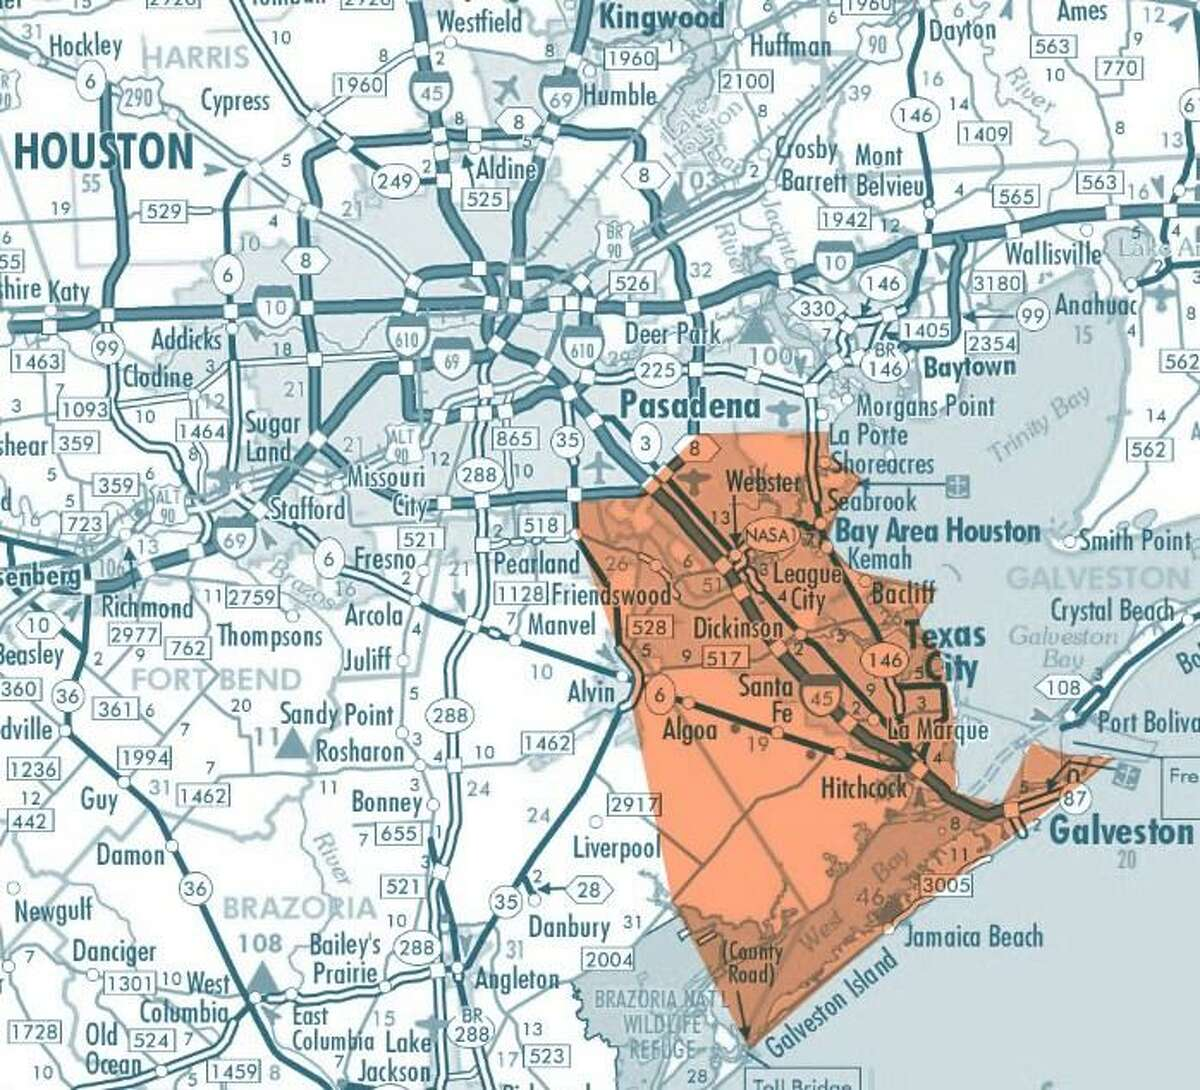 The 4B Disaster Response Network covers an area in southeast Harris County and Galveston County.